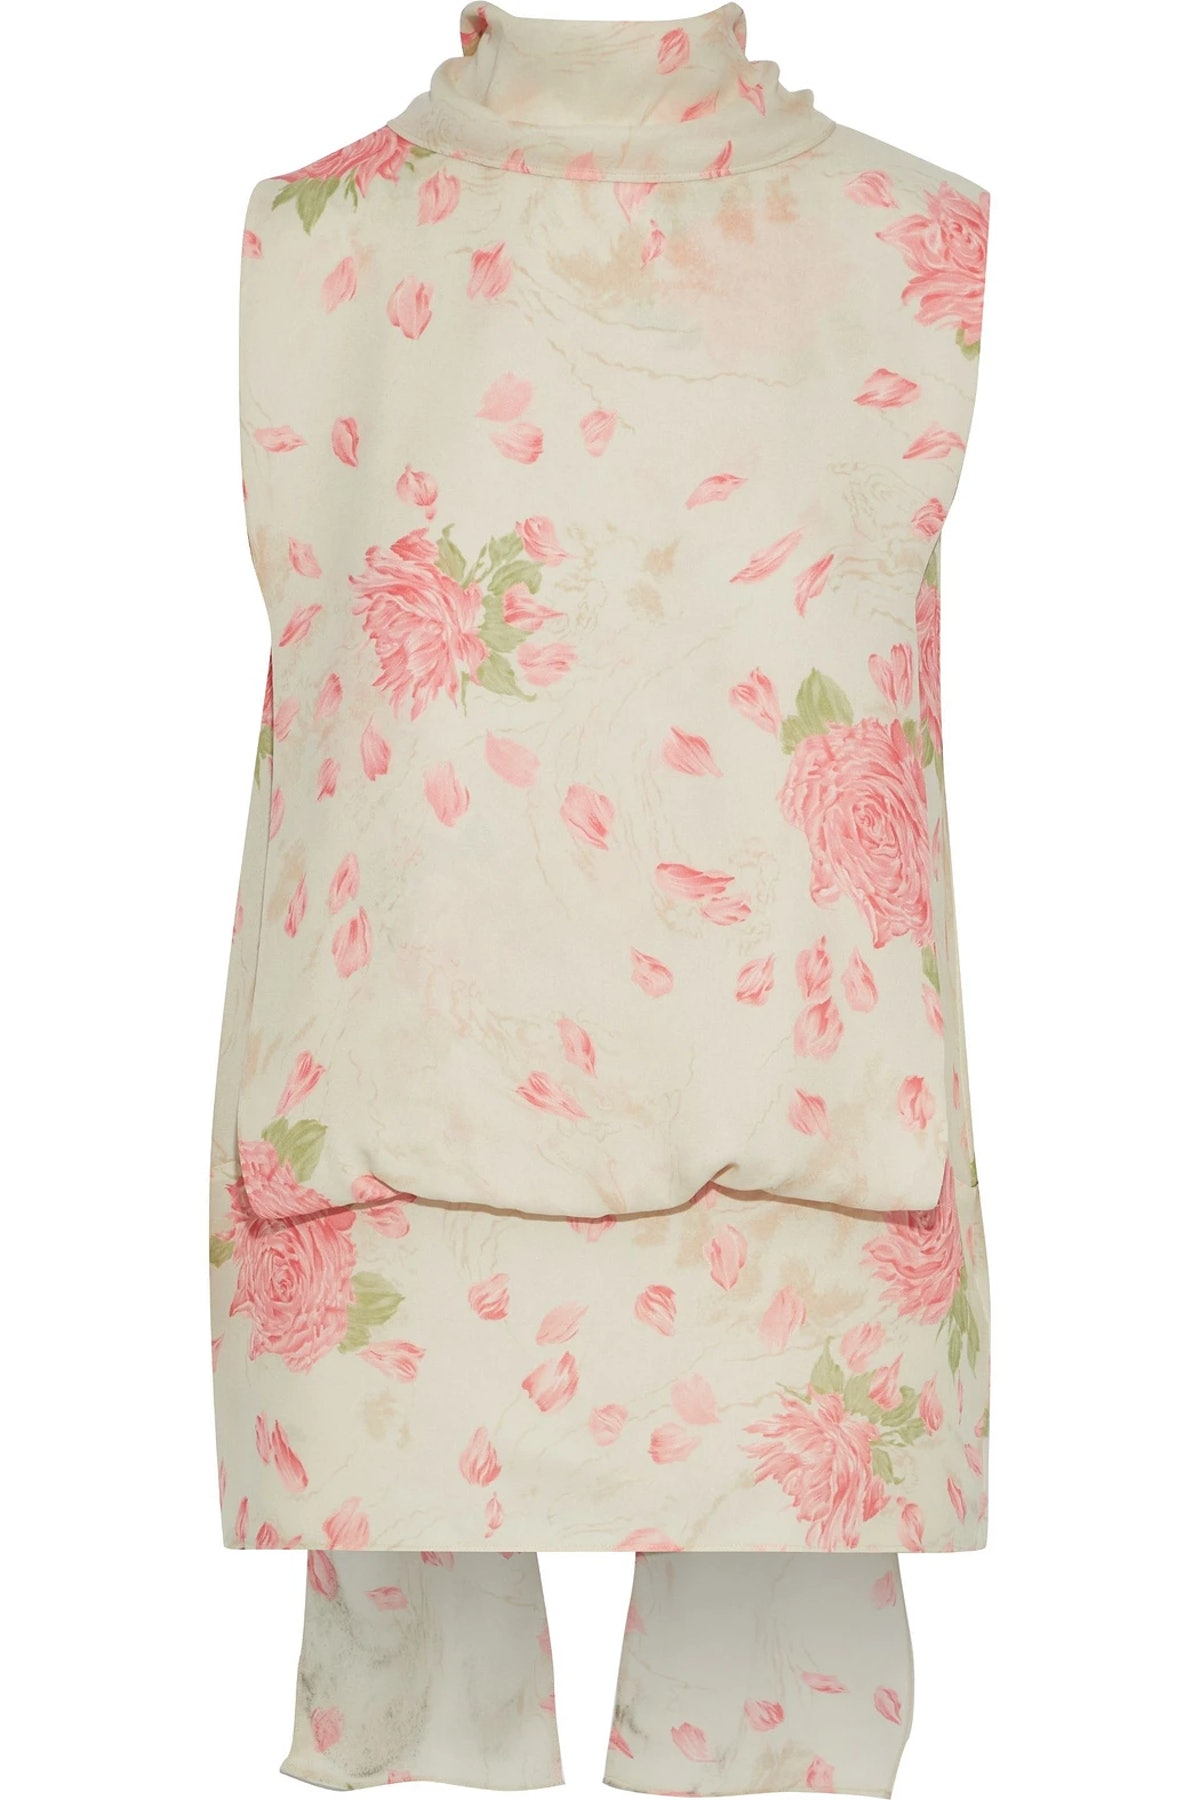 Valentino floral print top from The Outnet summer sale 2021.